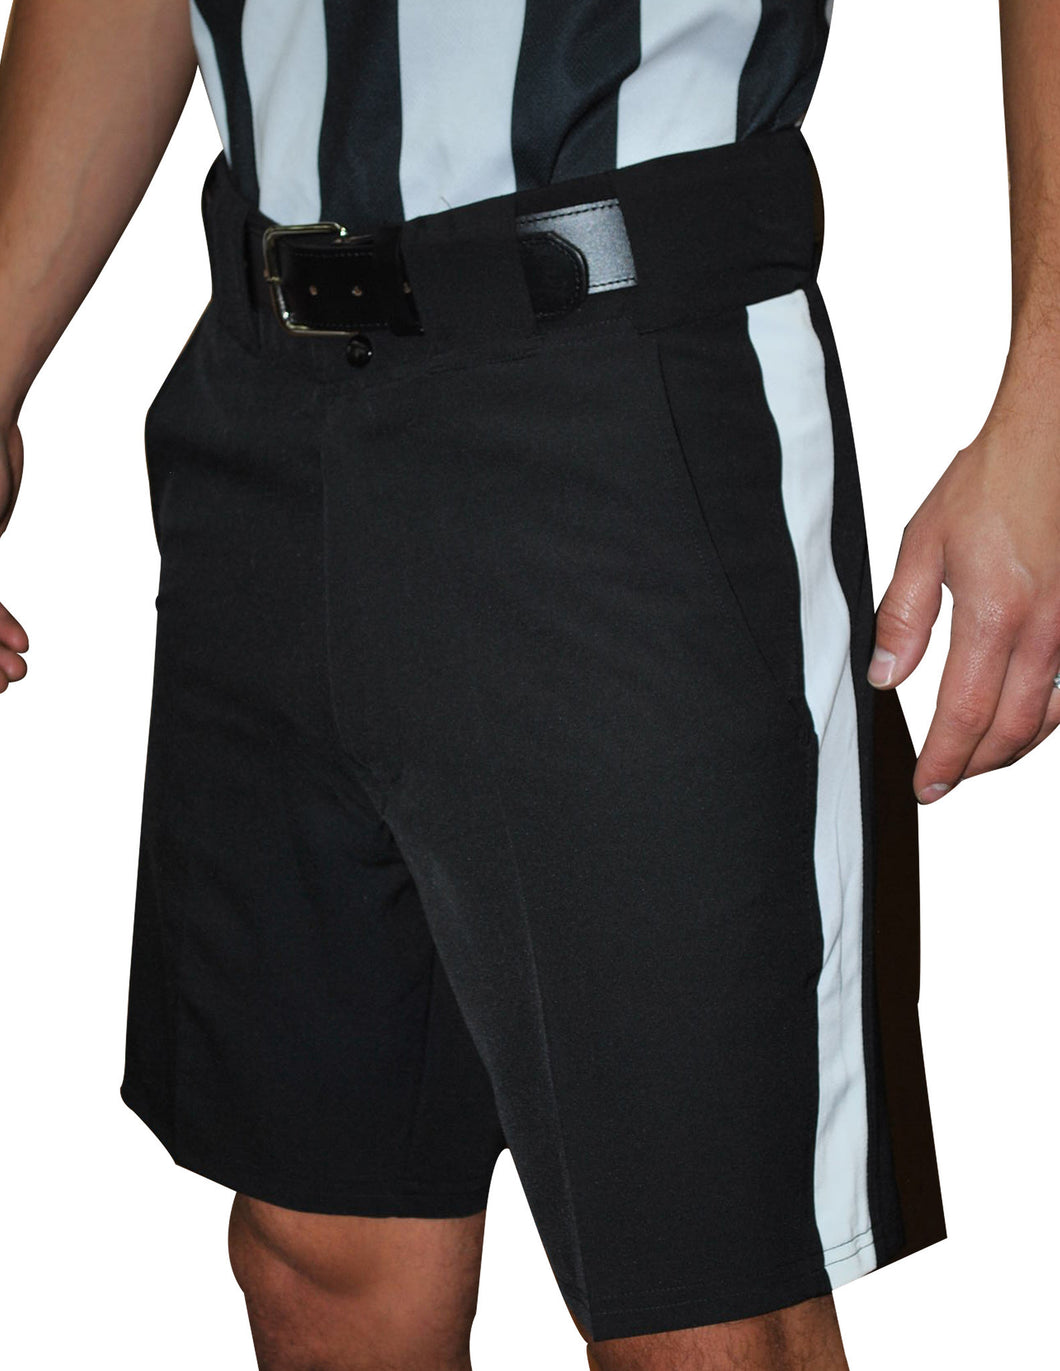 FBS180-Smitty Black Football Shorts w 1 1/4